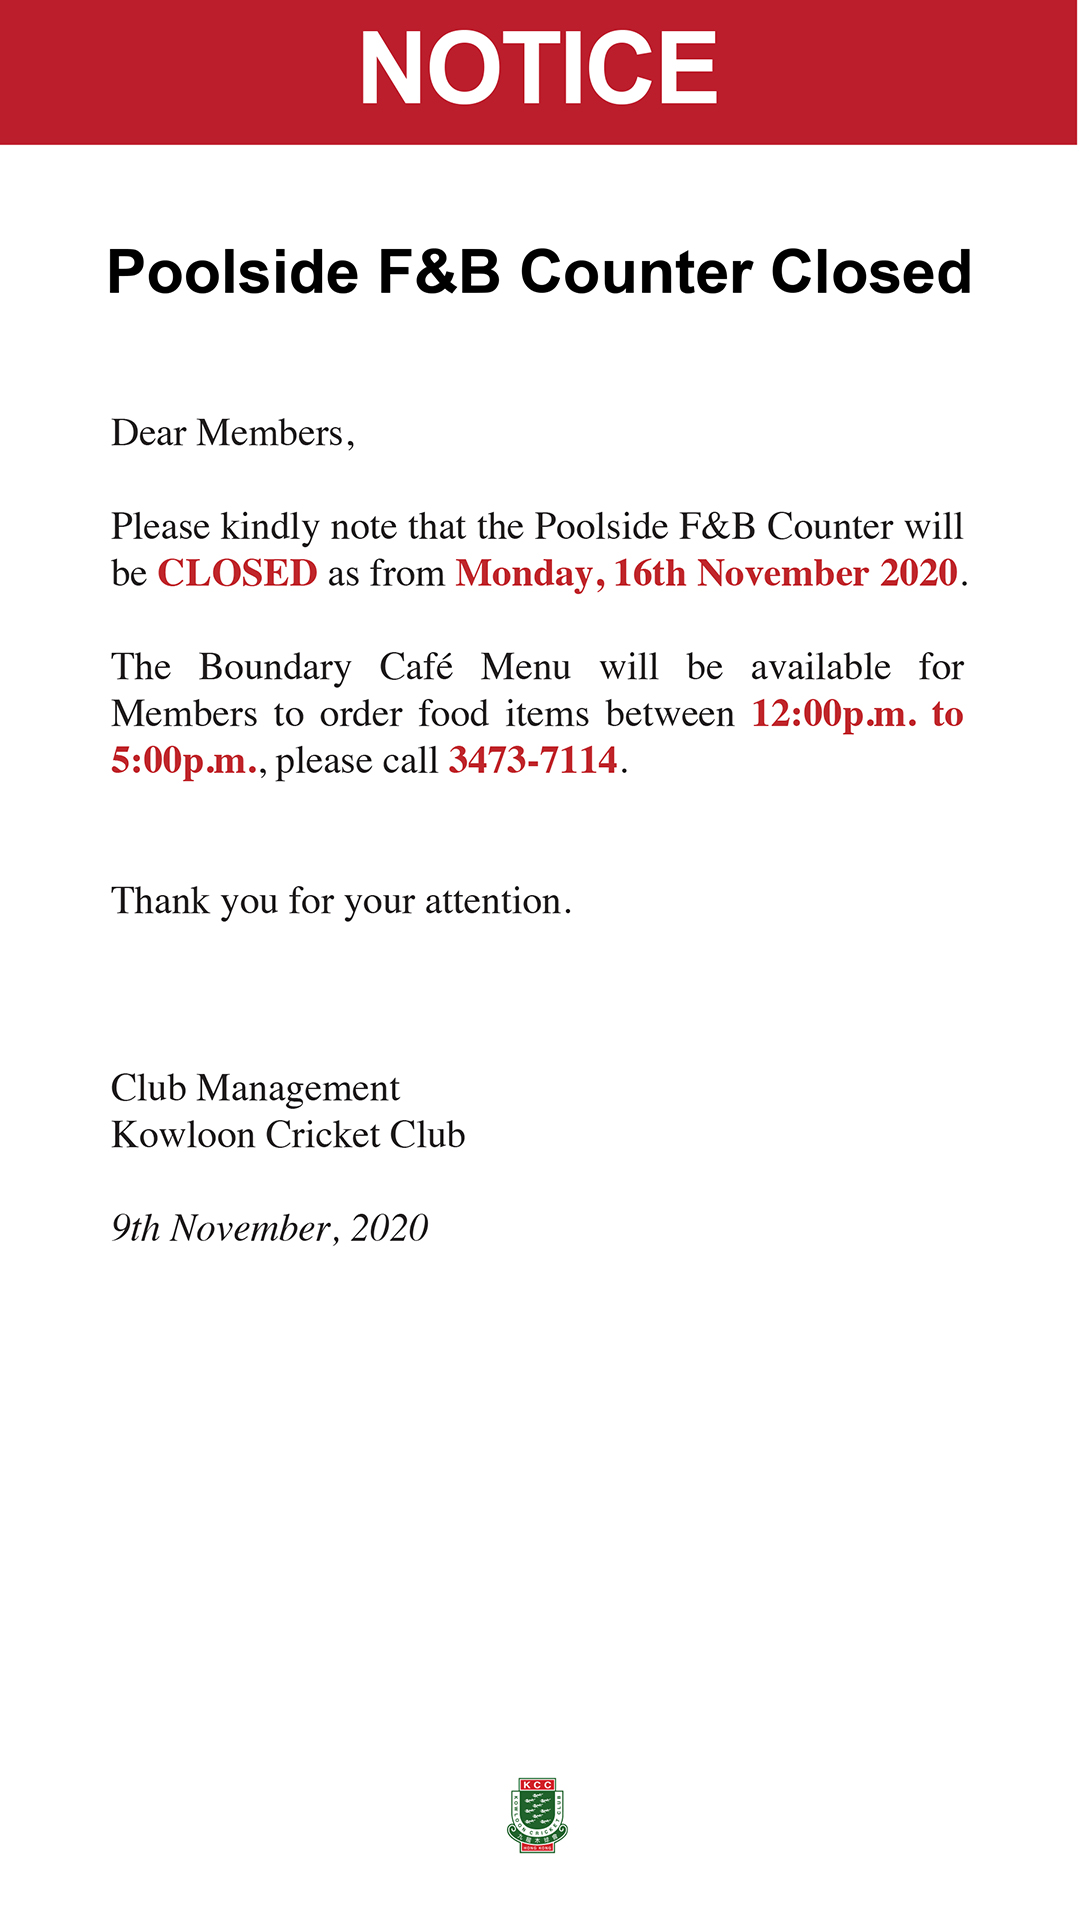 201911-Poolside F&B Counter CLOSED-notice-ENB